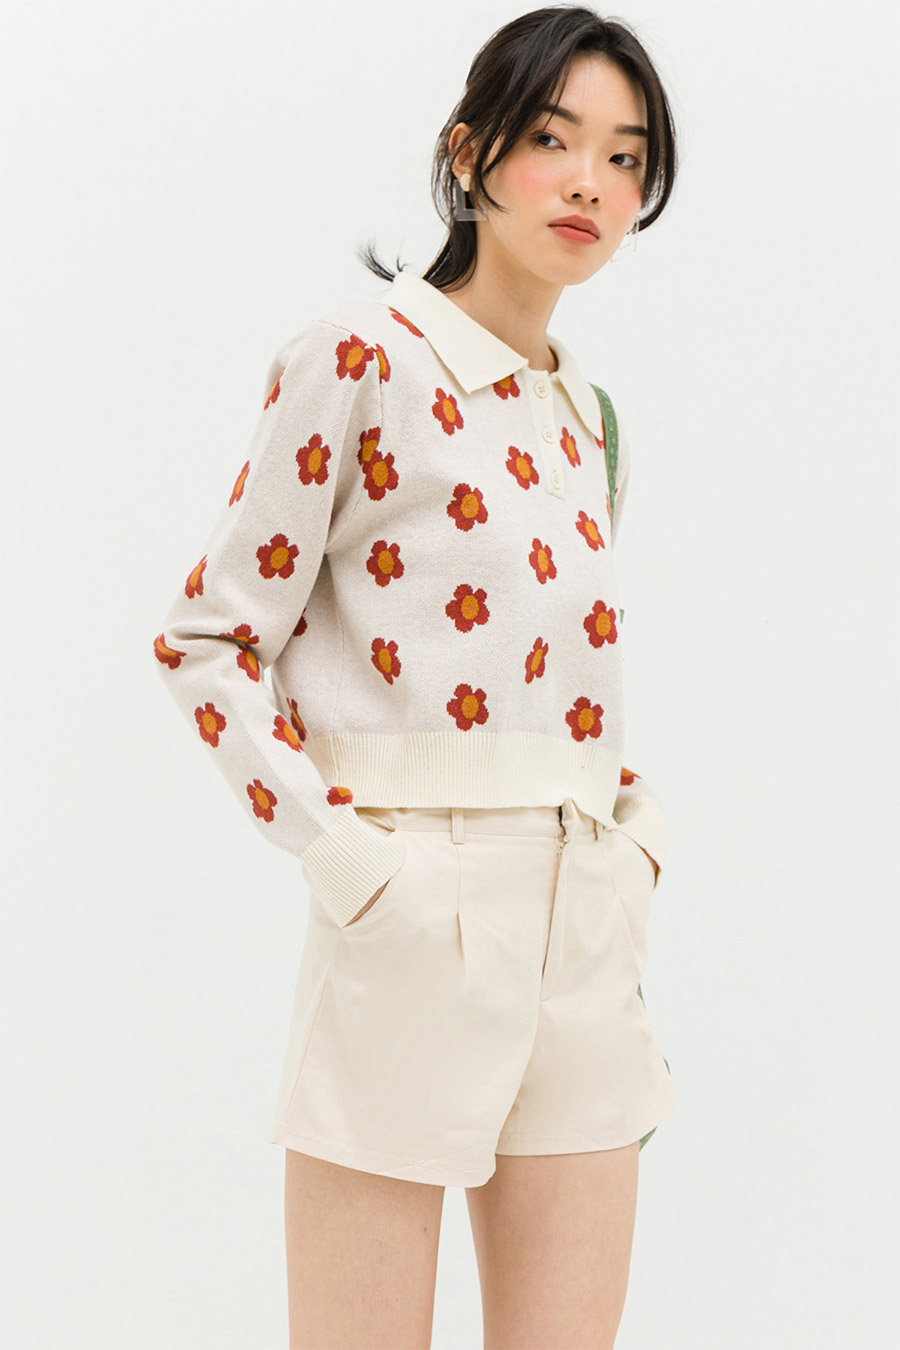 *RESTOCKED* PAULA TOP - CRIMSON POPPY